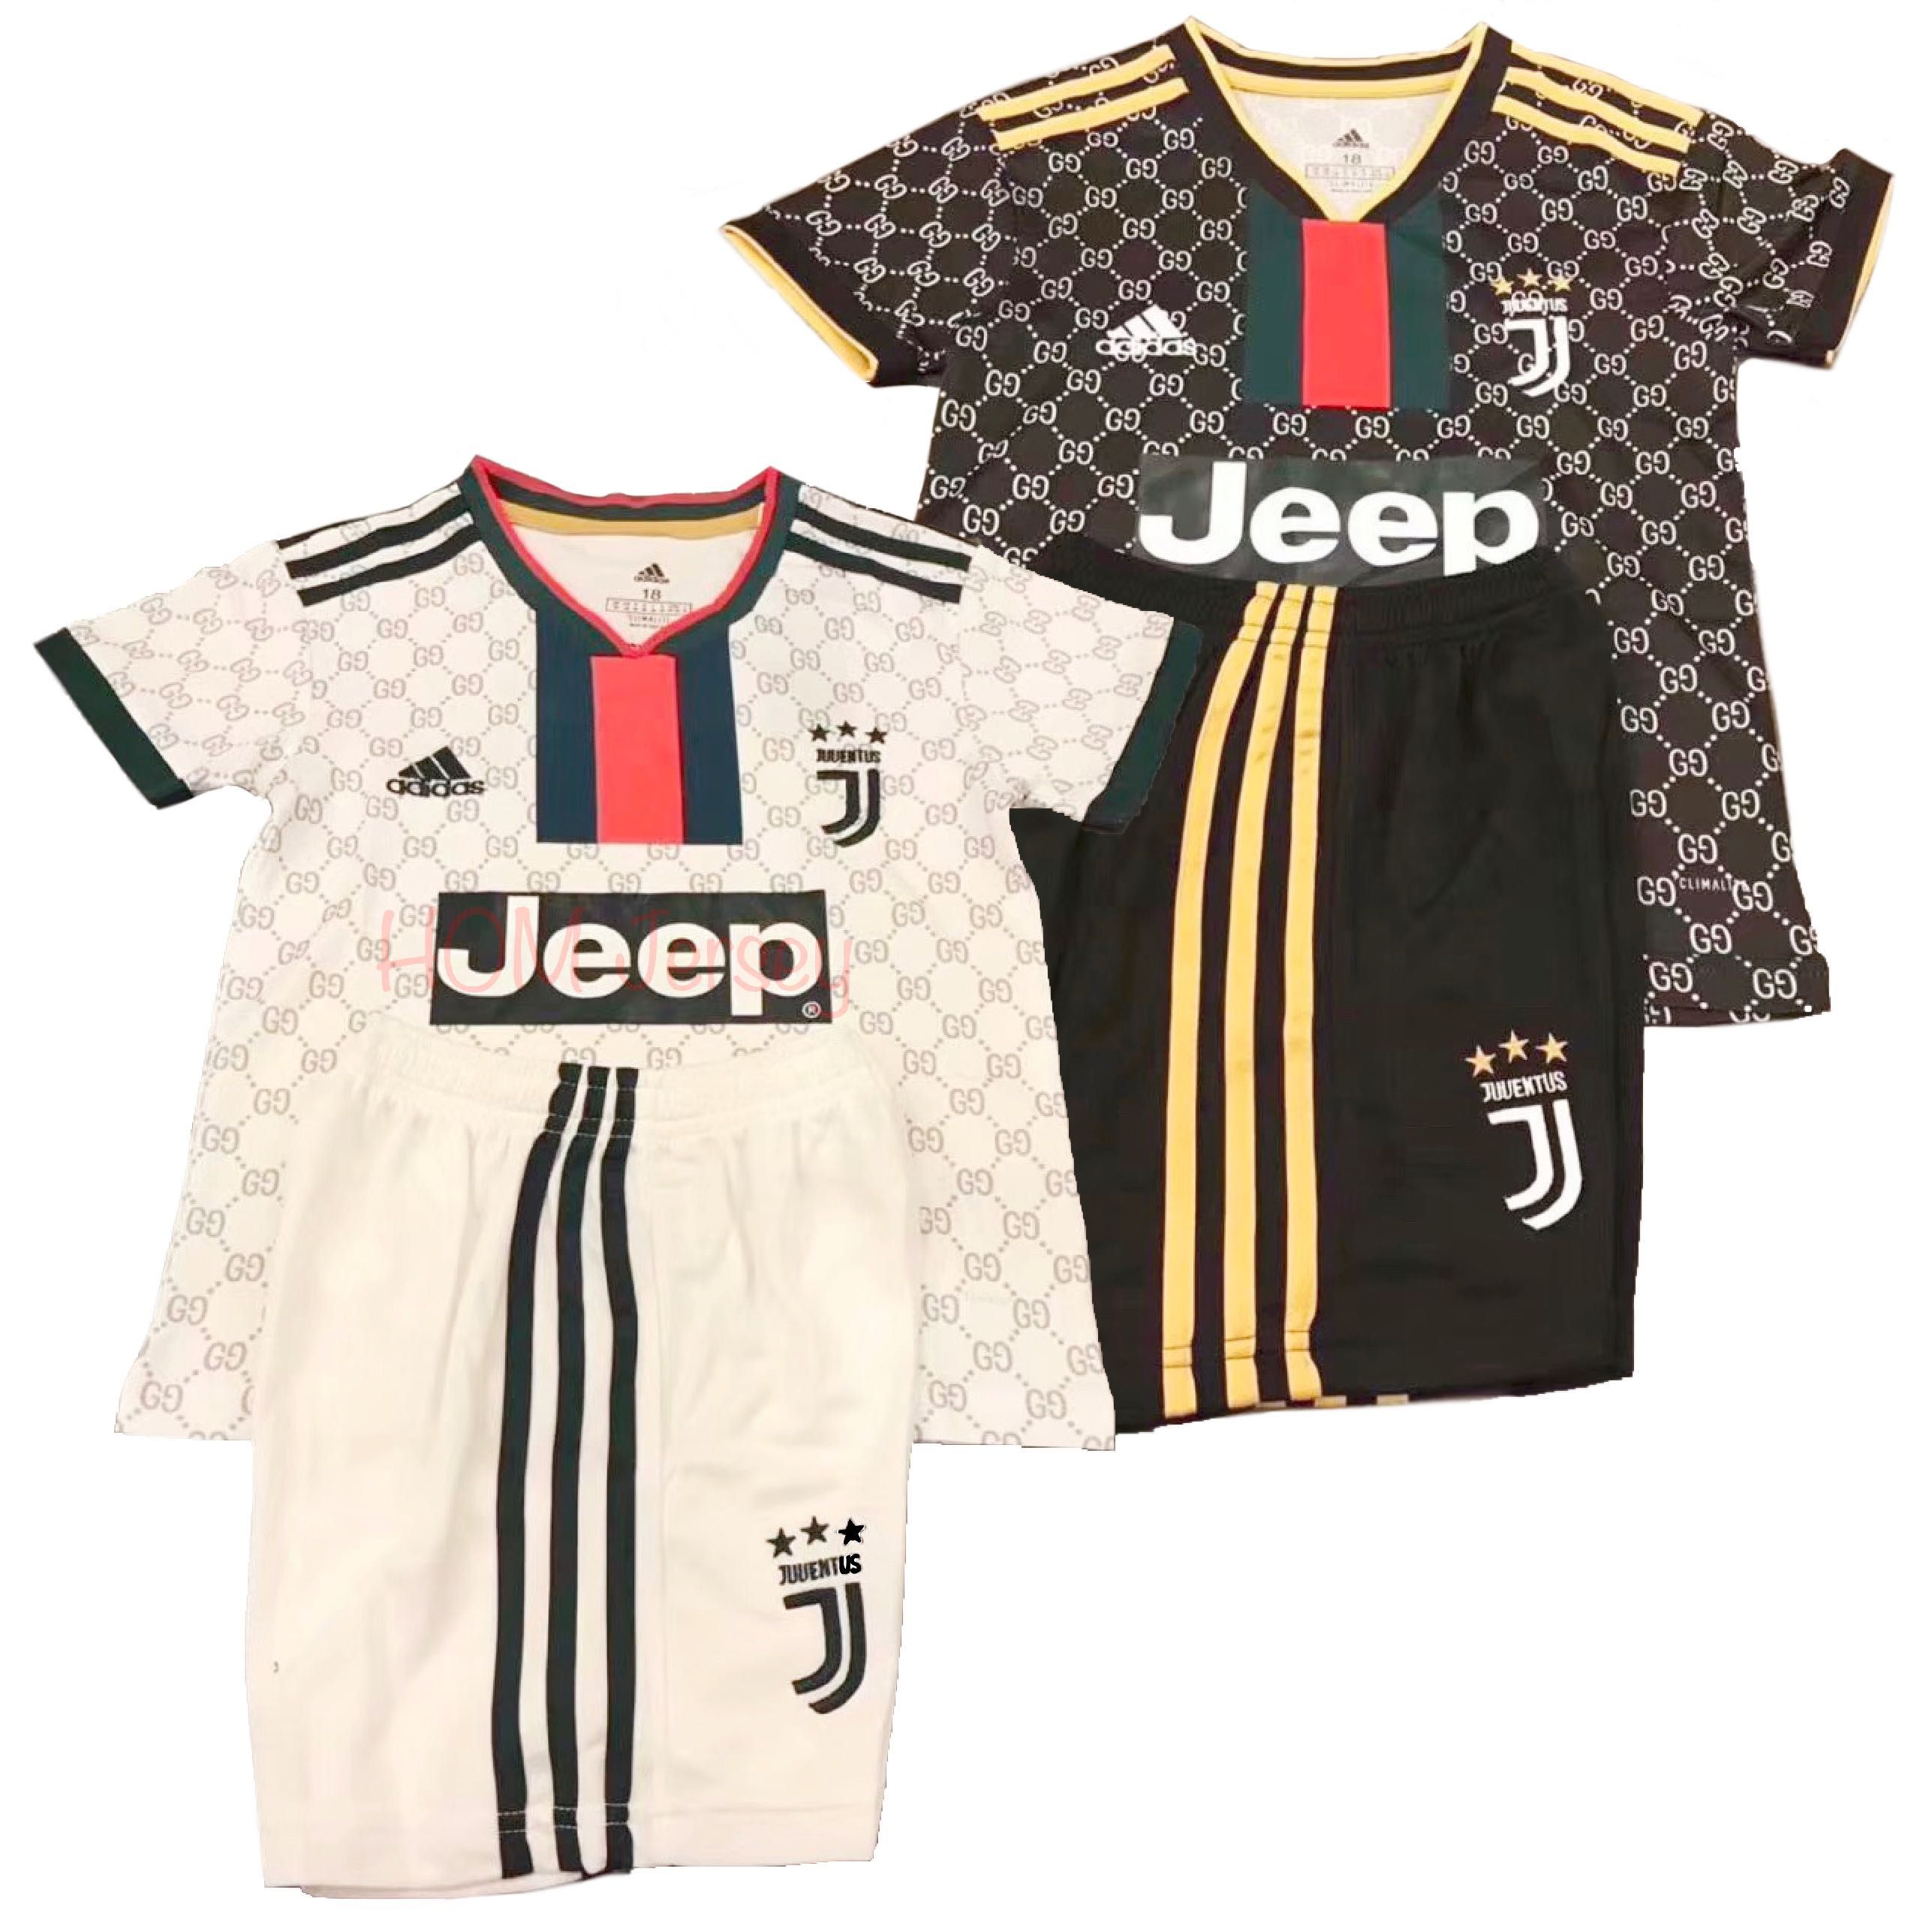 2019 Juventus Gucci Kids Jersey Babies Kids Boys Apparel 8 To 12 Years On Carousell